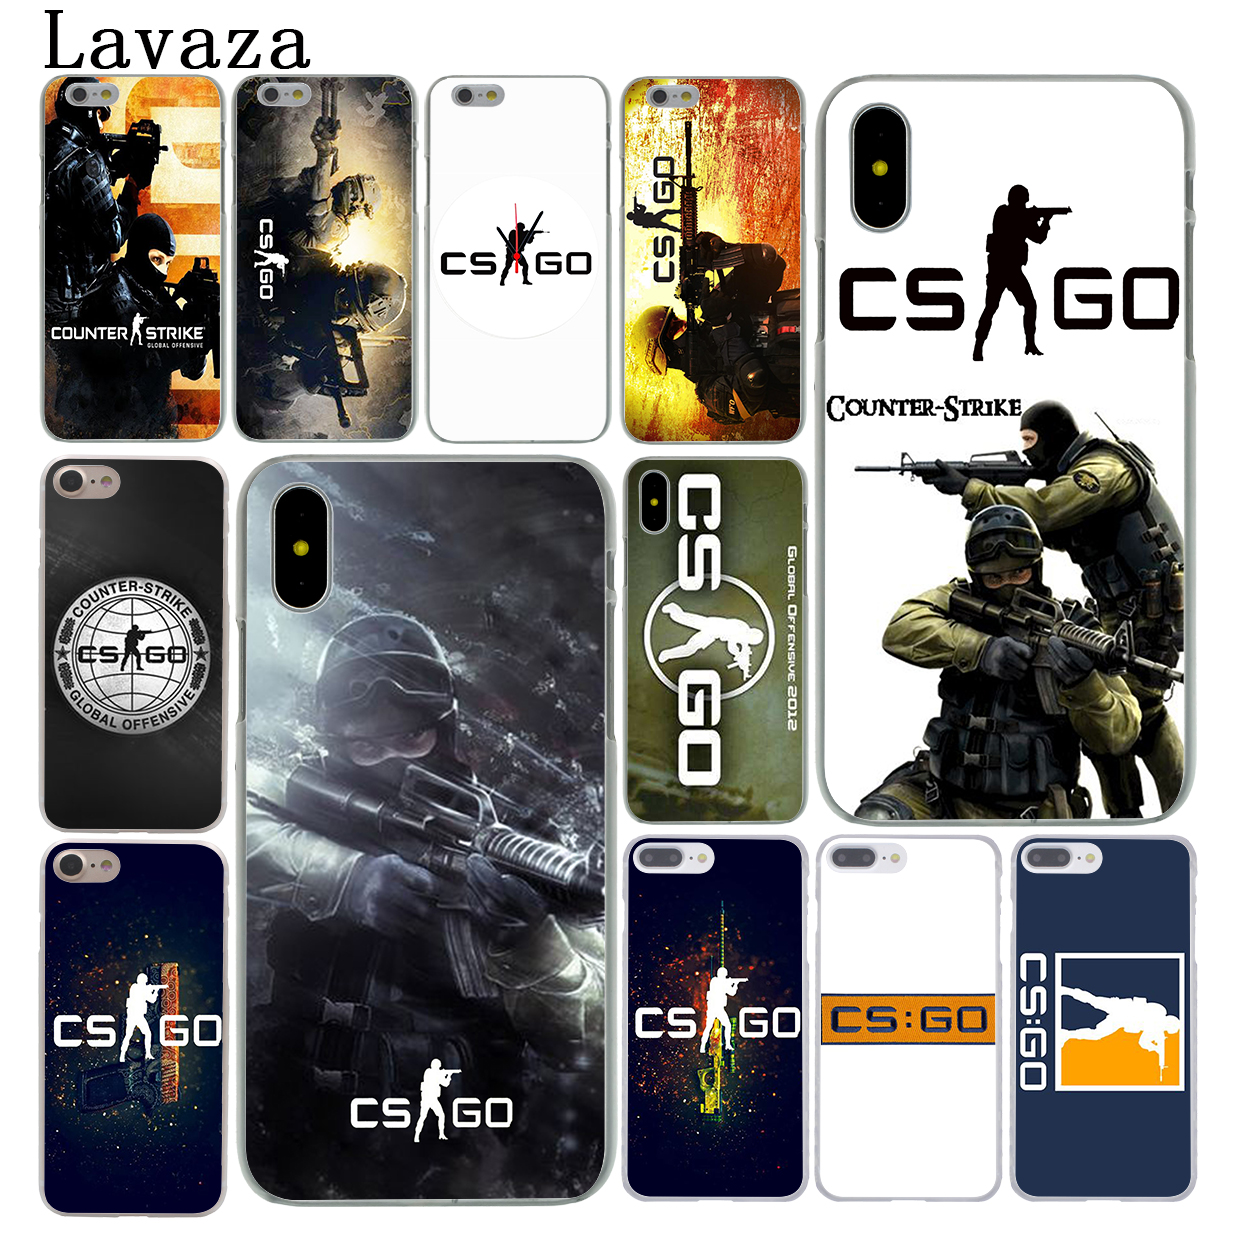 Accessories Phone Cases Covers For Iphone X Xr Xs Max 4 4s 5 5s 5c Se 6 6s 7 8 Plus Ipod Touch 5 6 Cs Go Gun Game On Phone Bags & Cases